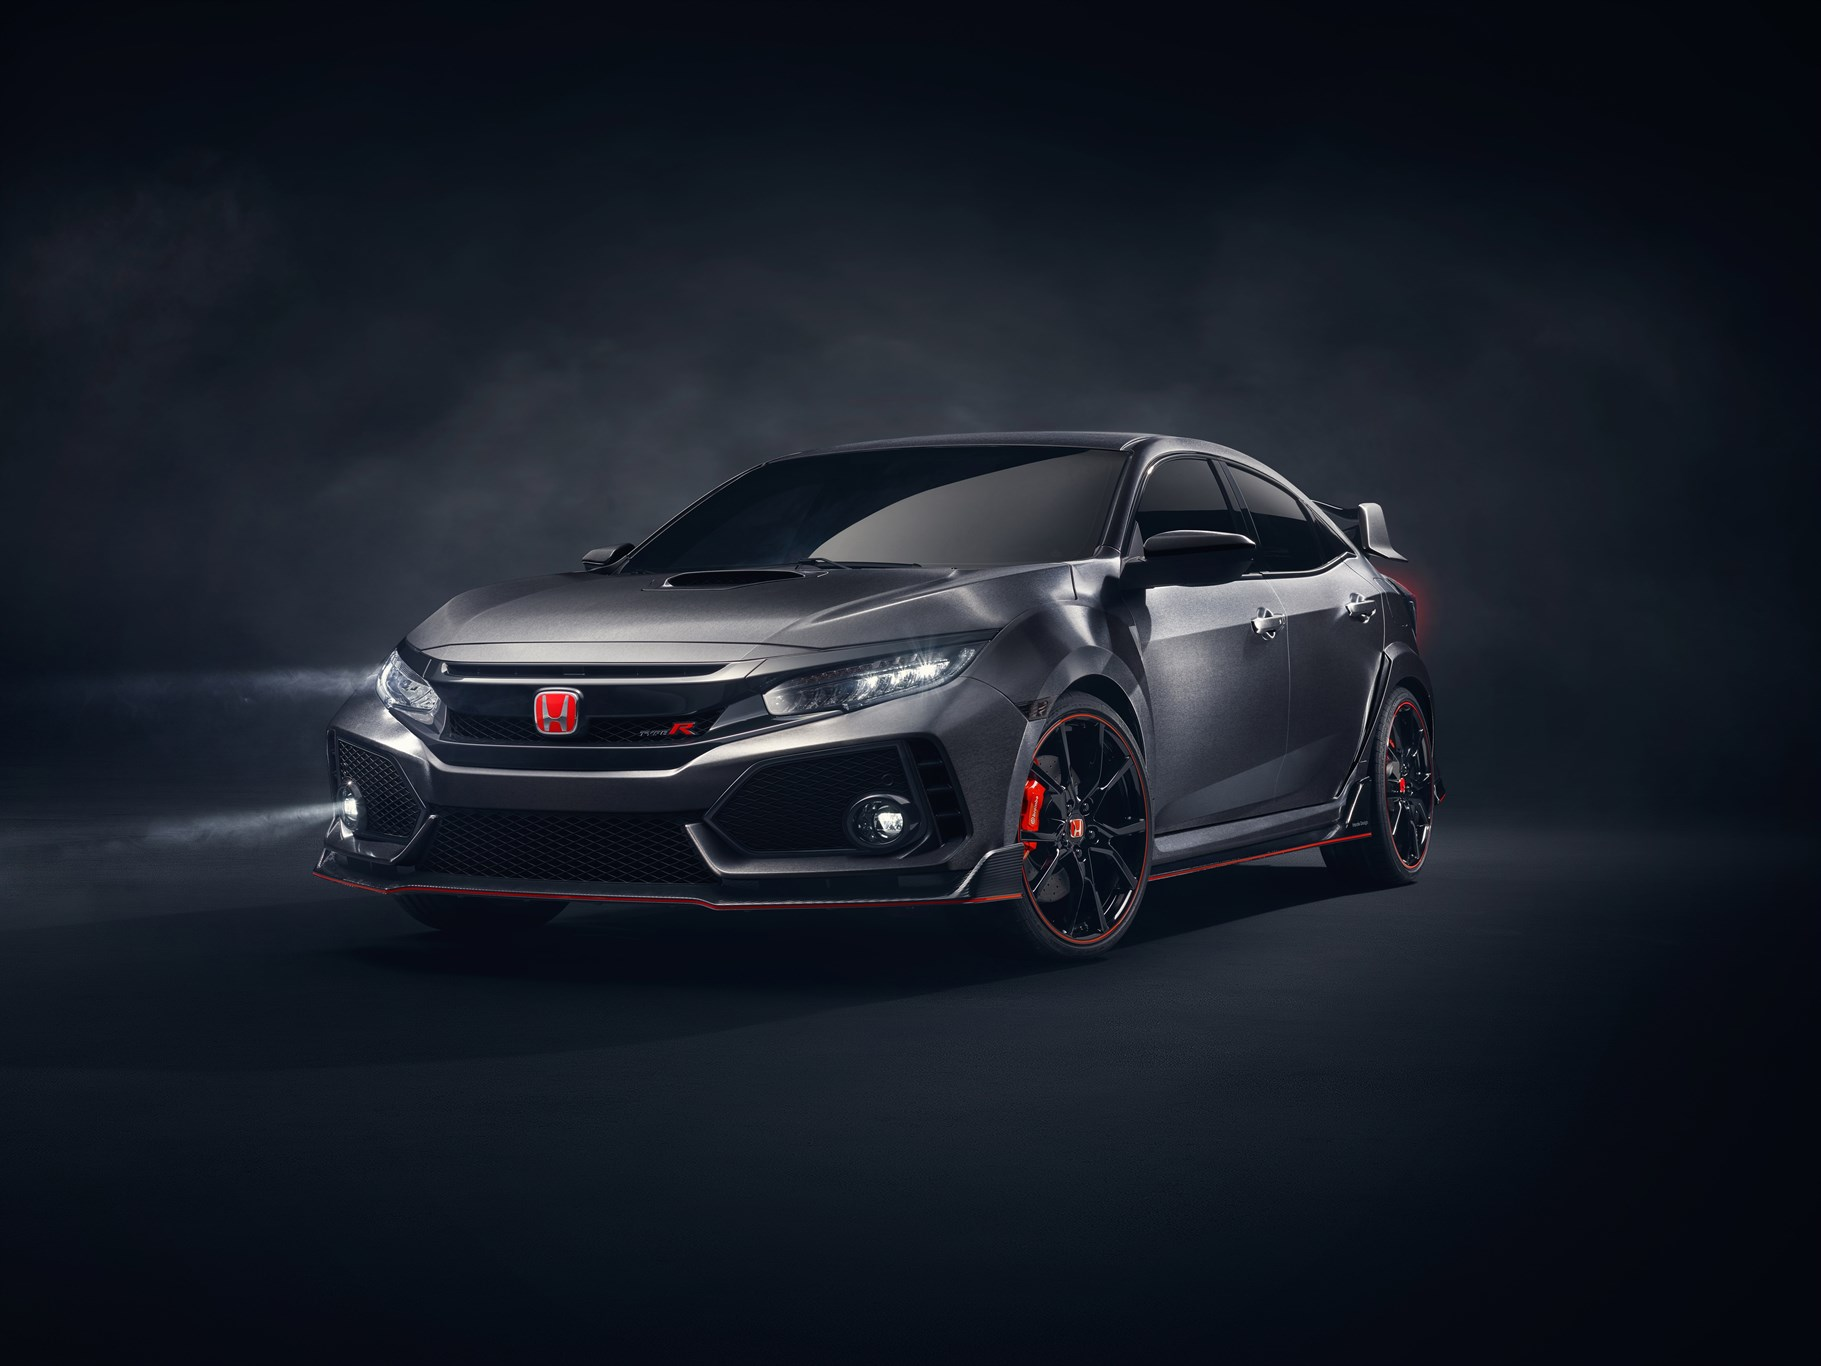 The Production Honda Civic Type R Will Be Revealed In Geneva